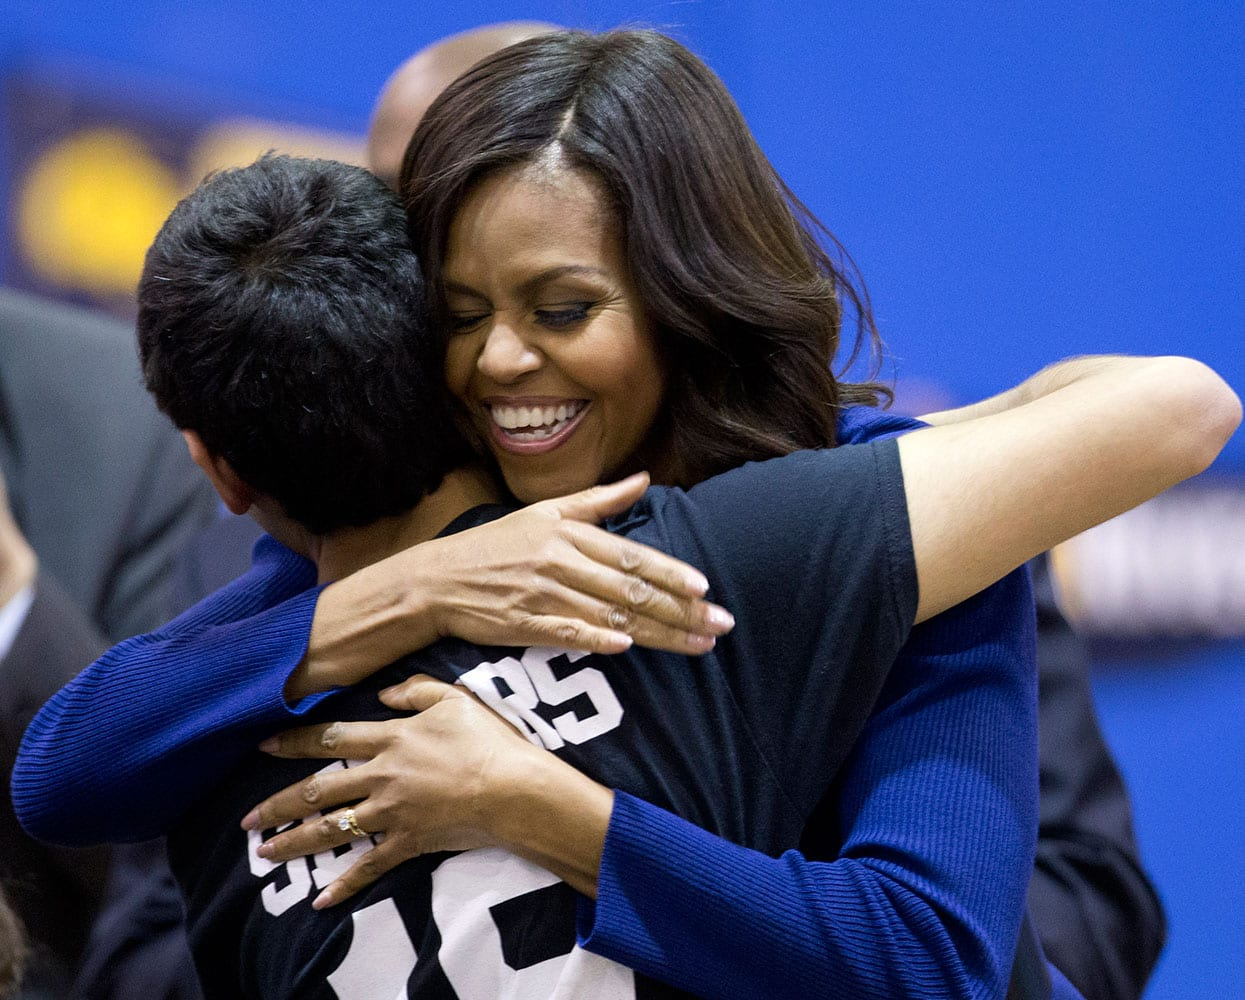 First lady Michelle Obama hugs a Capital City Public Charter School senior after speaking at Capital City Public Charter School in Washington, Friday, Dec. 5, 2014, at the second annual College Application March, part of her Reach Higher initiative.